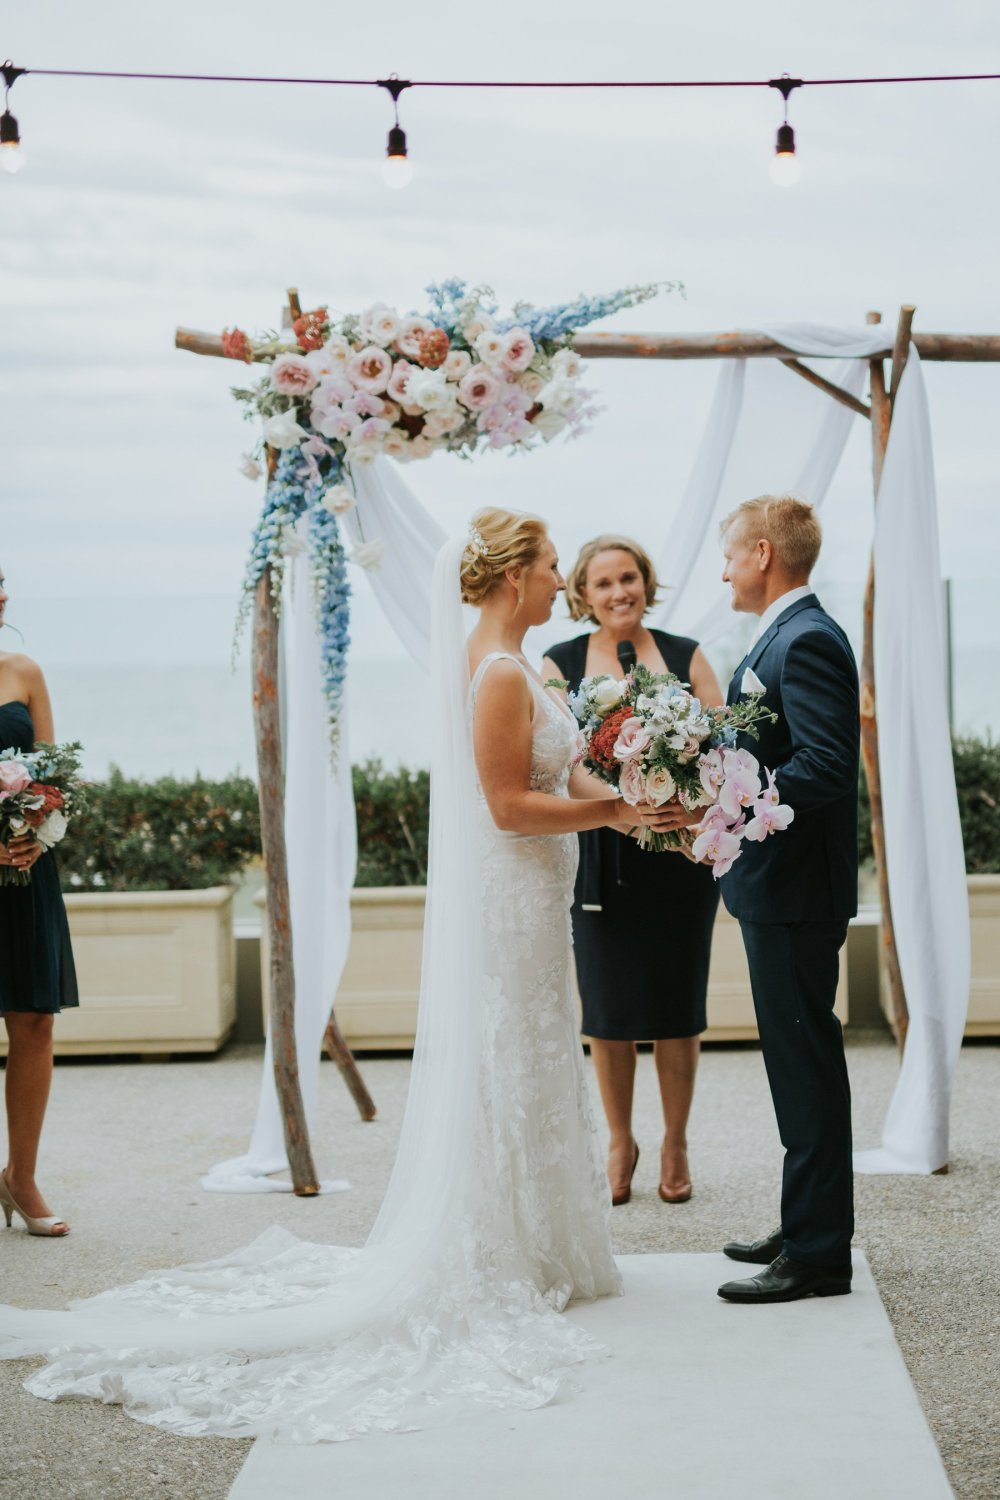 Kate + Graeme | Mindarie Wedding | Ebony Blush Photography | Zoe Theiadore | Perth wedding Photographer104